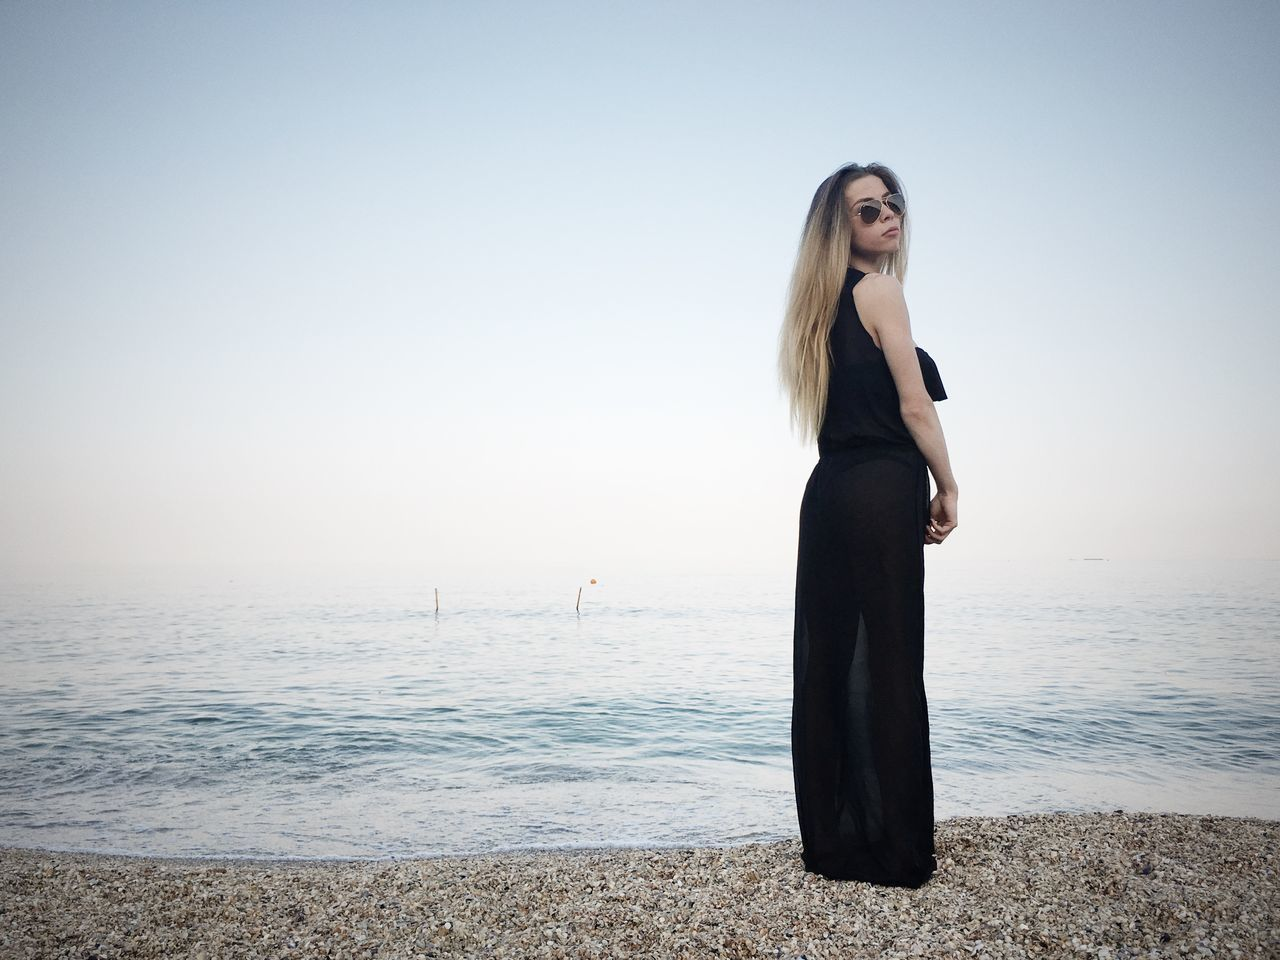 sea, water, standing, horizon over water, one person, nature, real people, clear sky, scenics, beauty in nature, young adult, young women, tranquil scene, beach, leisure activity, outdoors, lifestyles, tranquility, sky, day, full length, beautiful woman, women, people